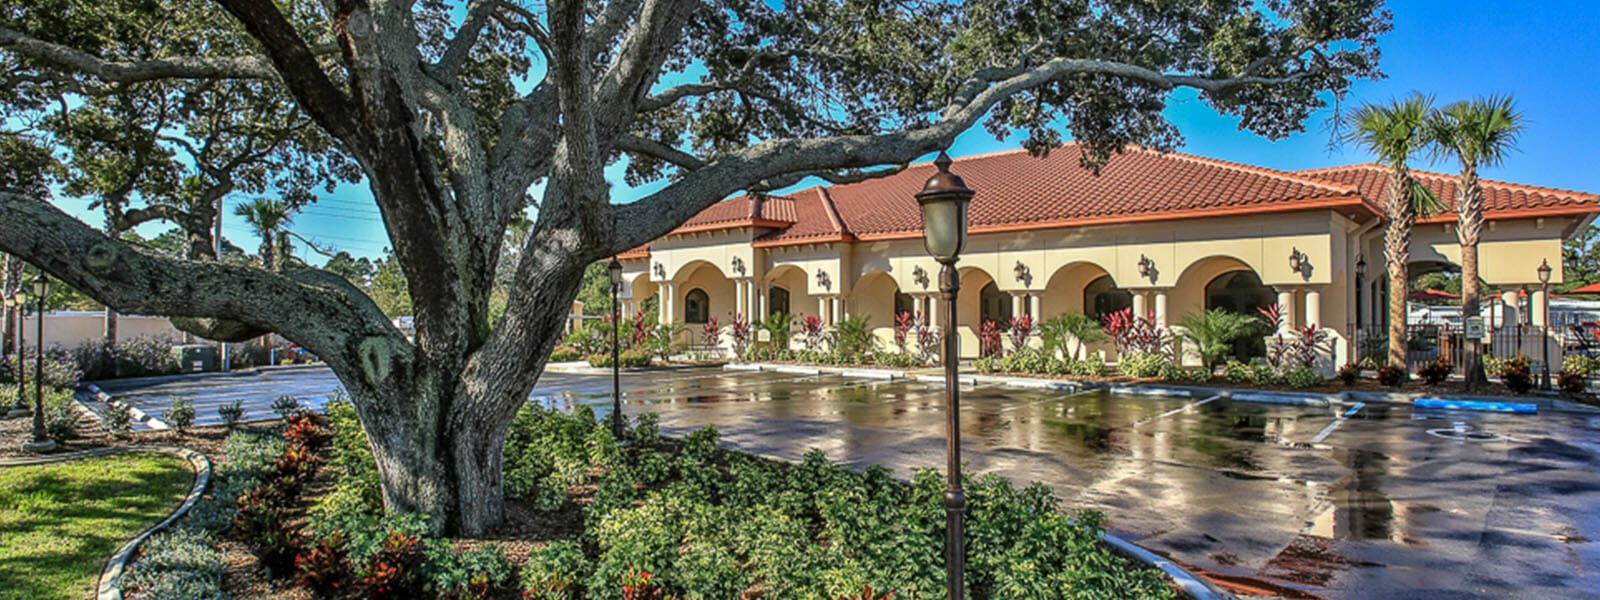 Briarwood Active 55+ Resort near Daytona Beach FL | Coastal Luxury